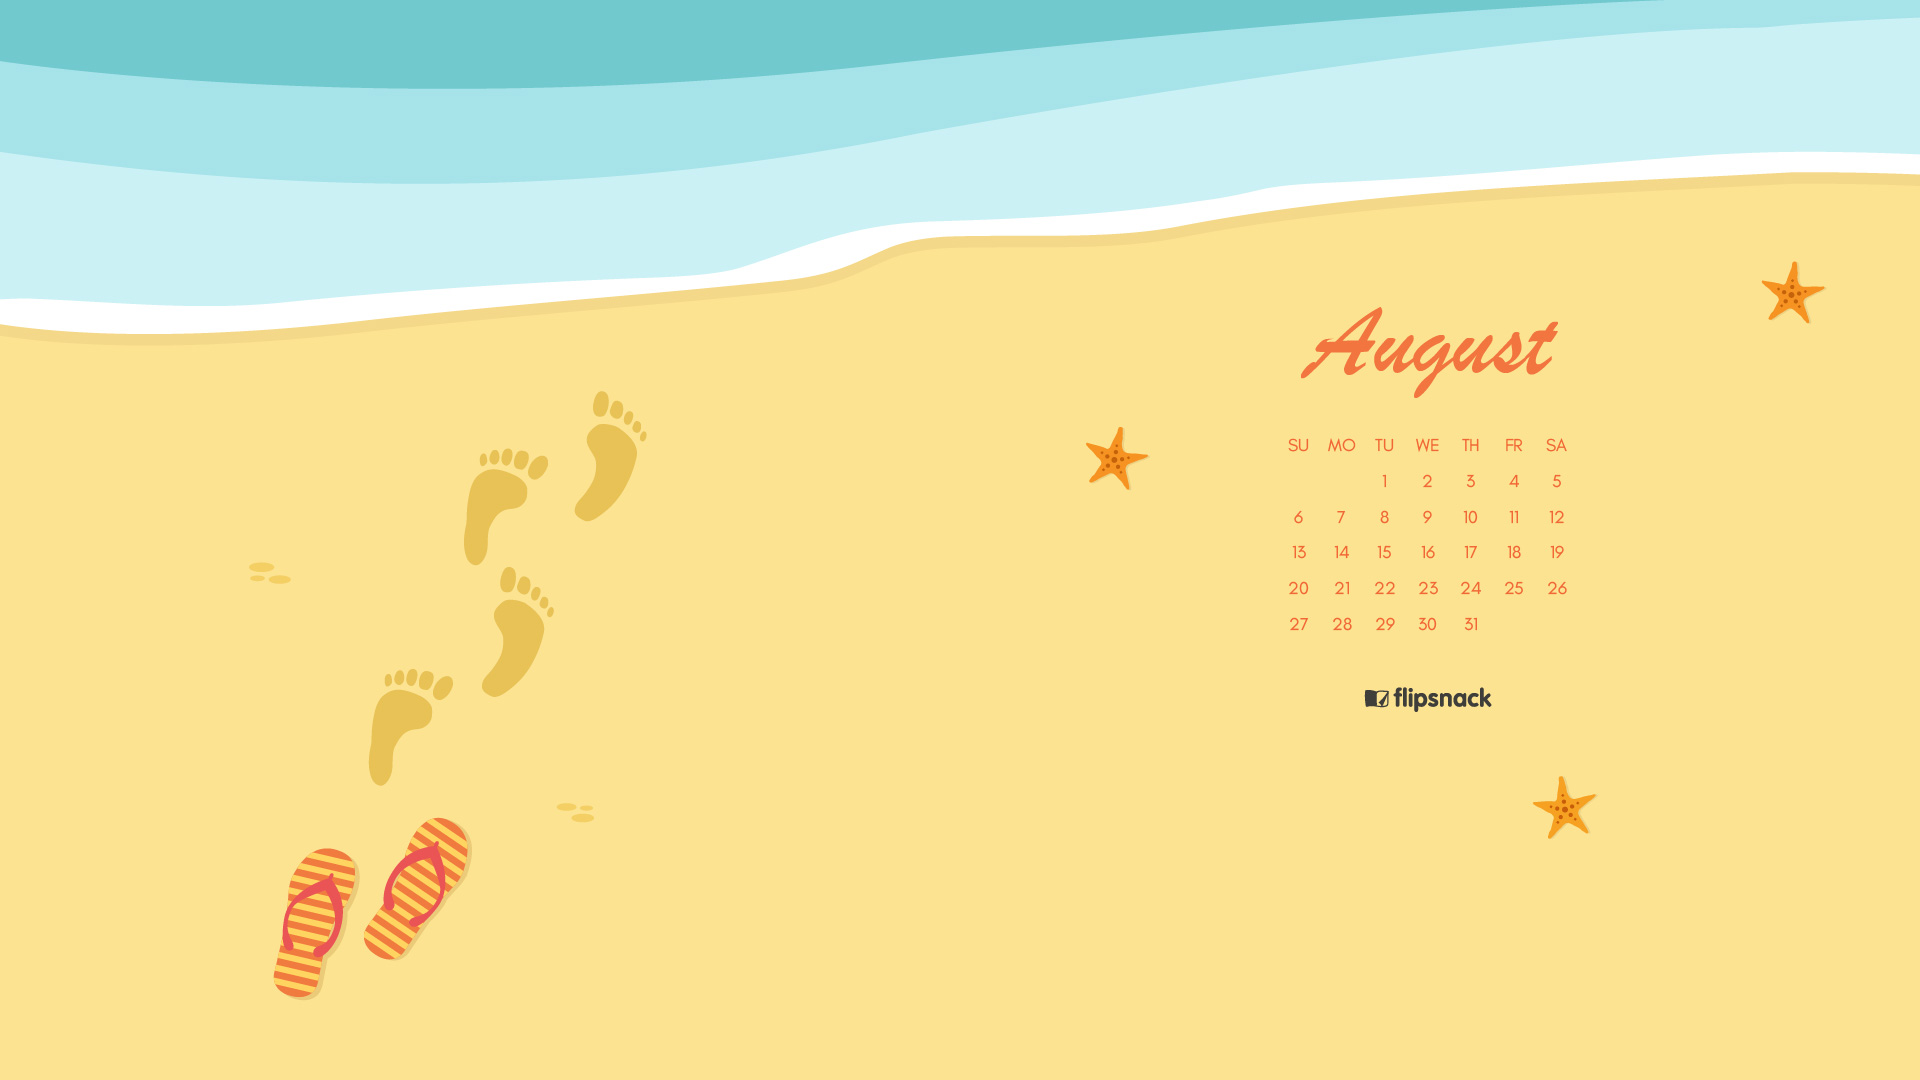 Calendar Computer Wallpaper : August calendar wallpaper for desktop background